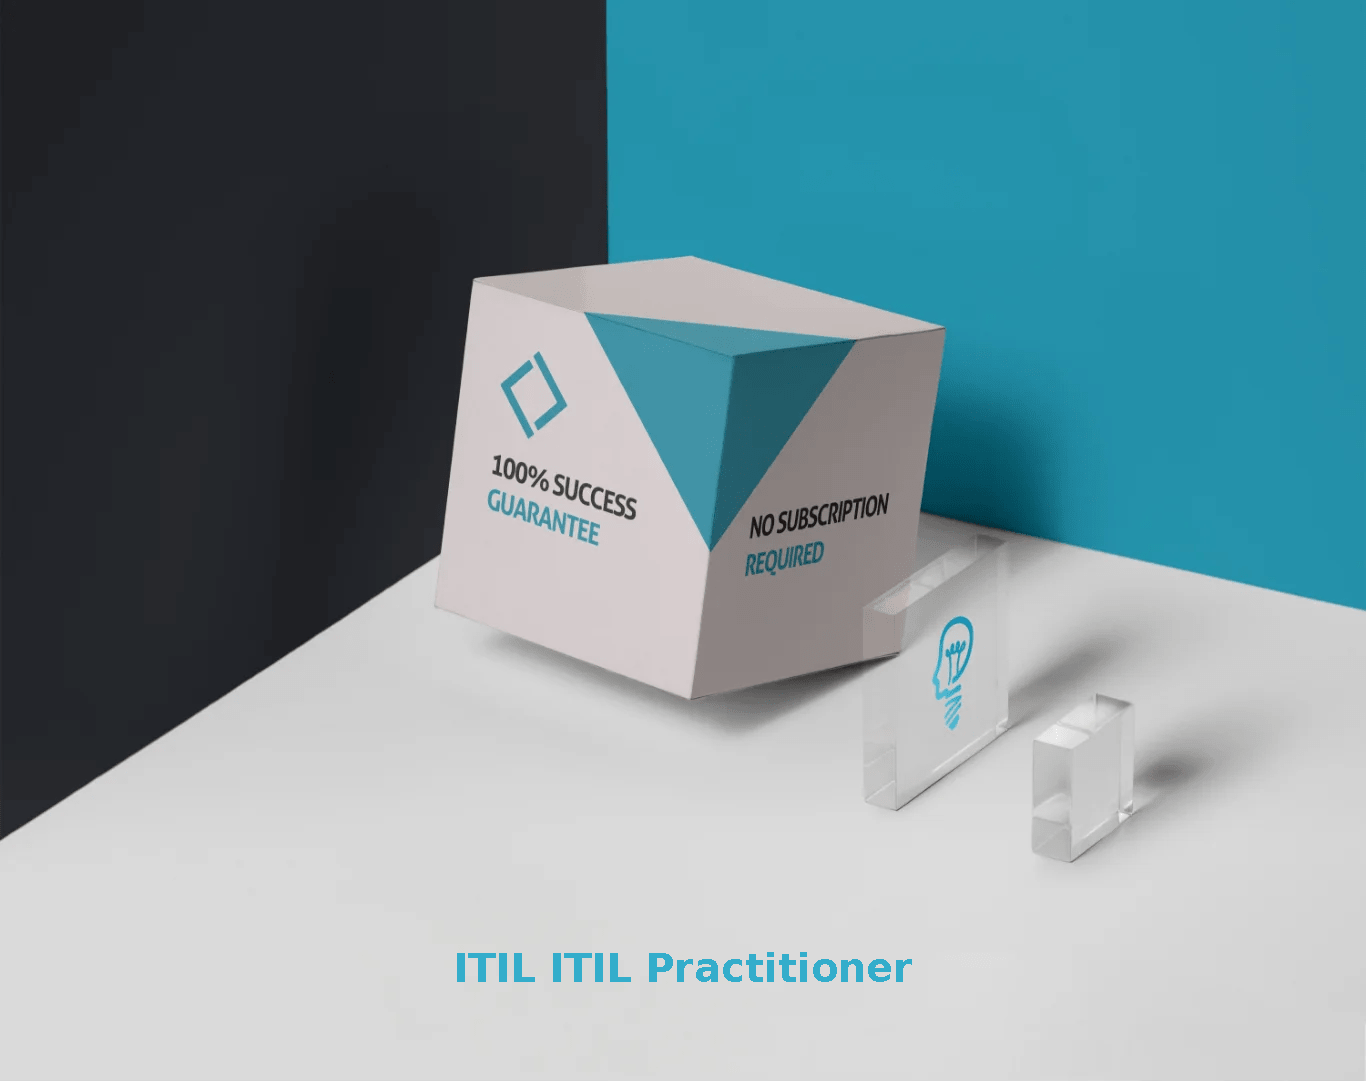 ITIL ITIL Practitioner Exams